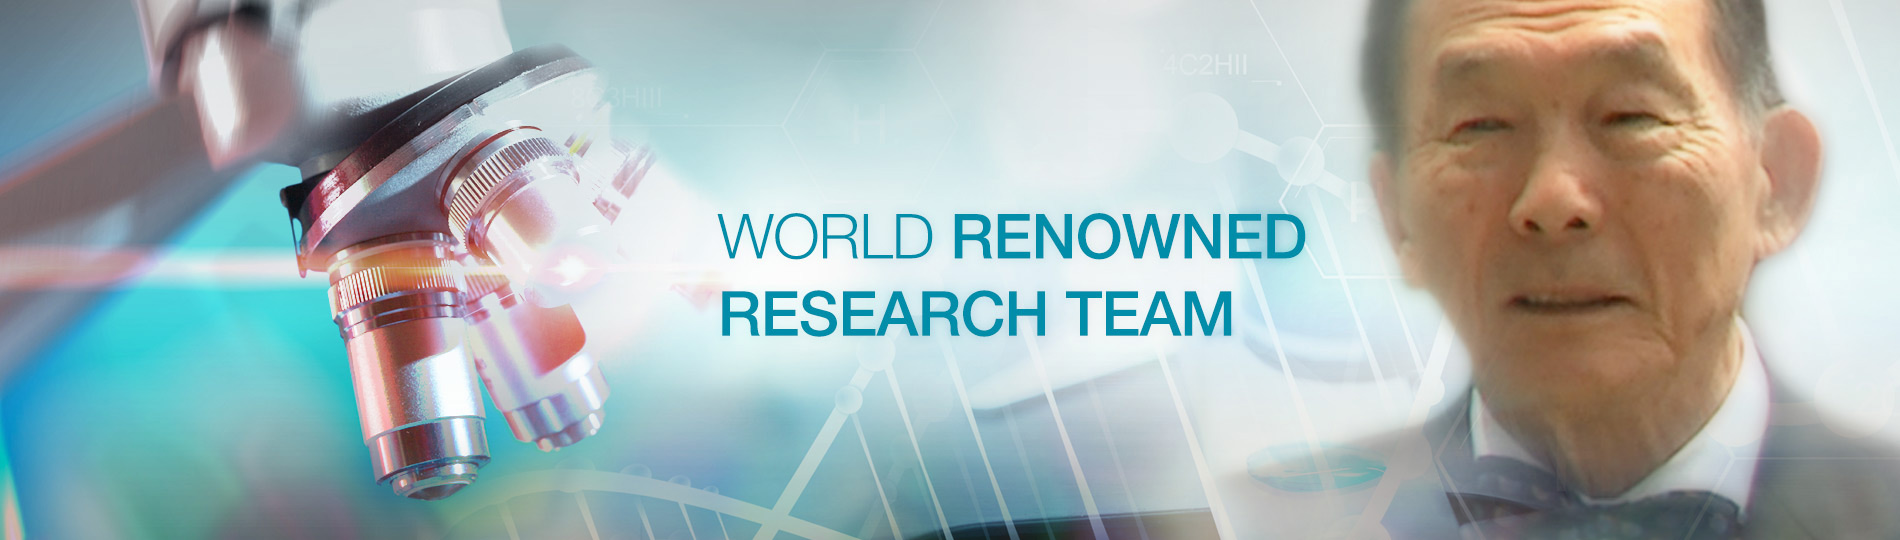 World renowned research team